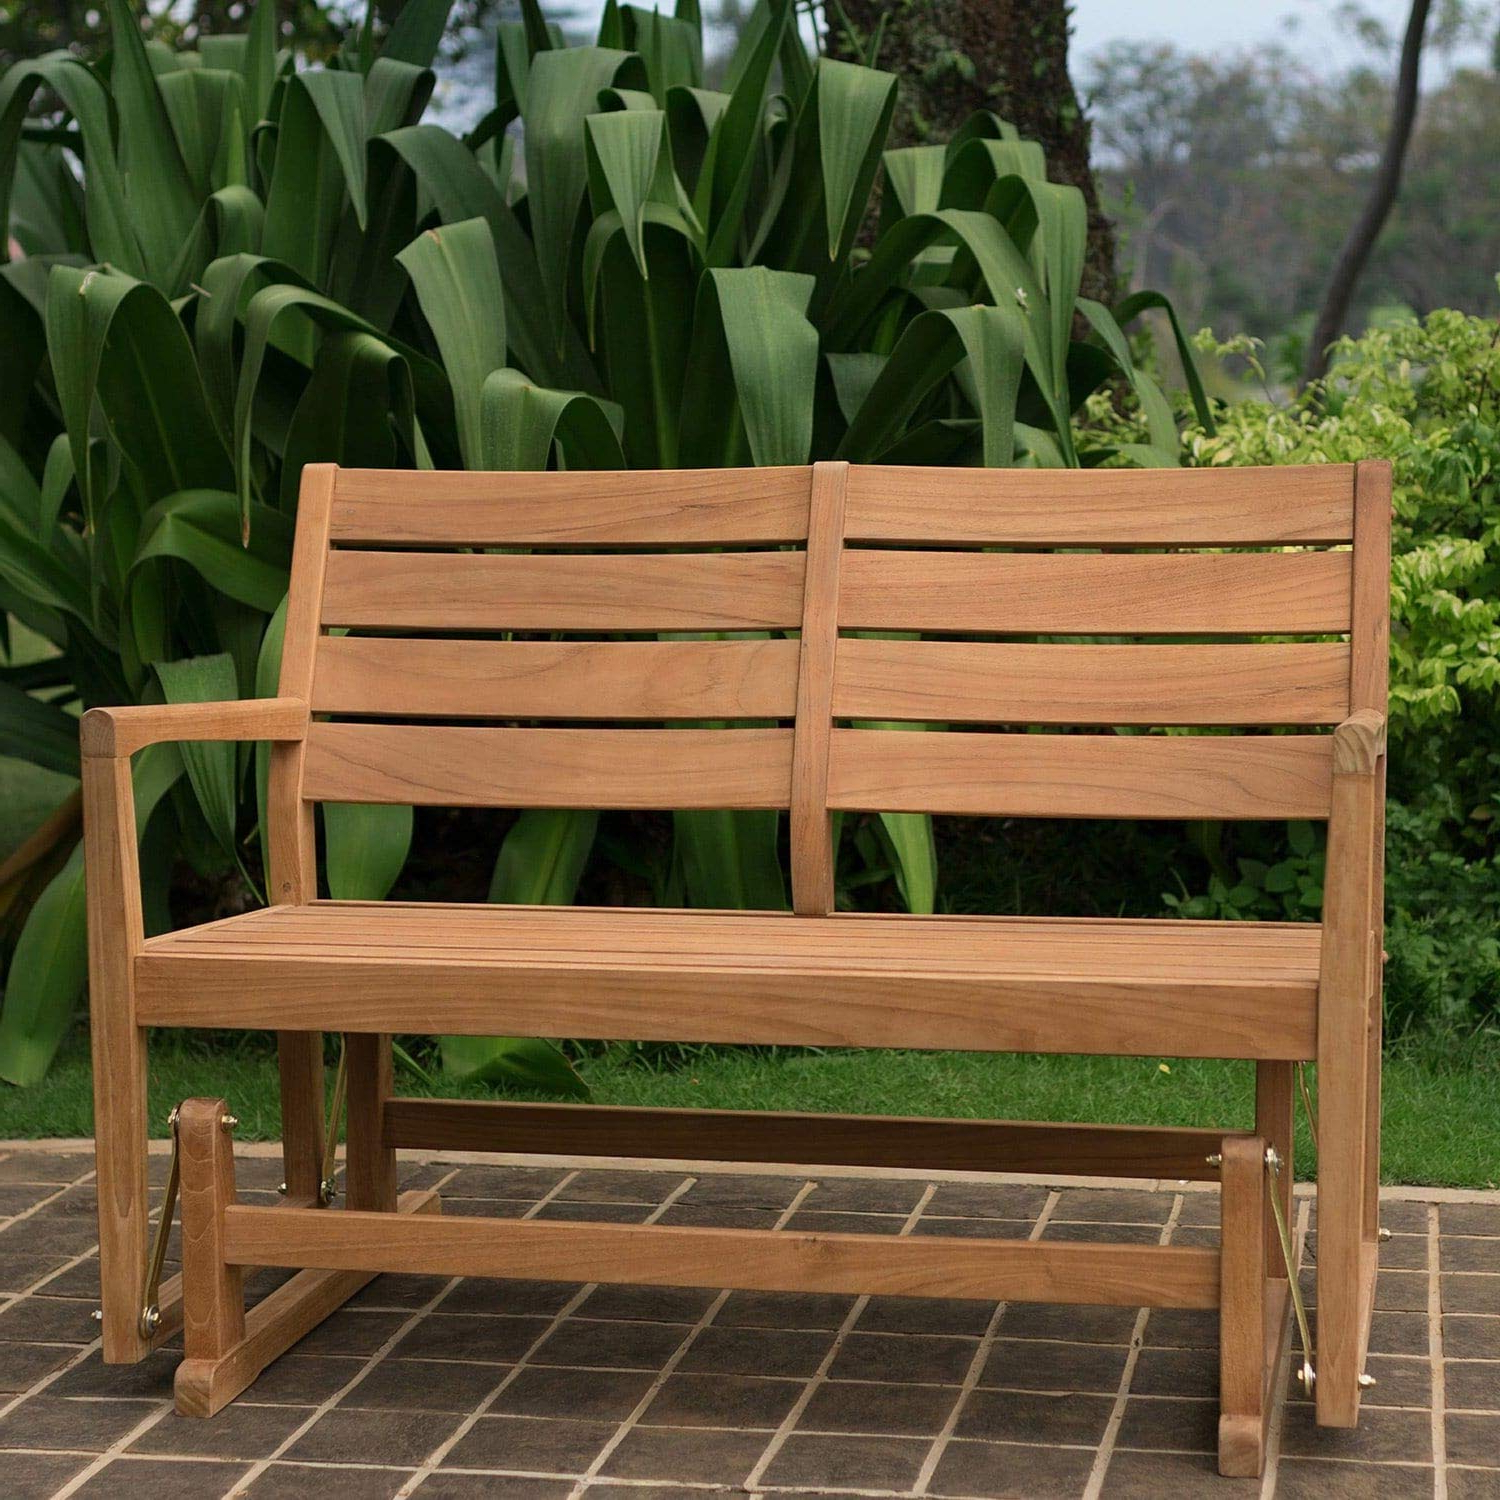 Fashionable Teak Glider Benches In Amazon : Cambridge Casual Andrea Teak Glider Bench (View 4 of 30)